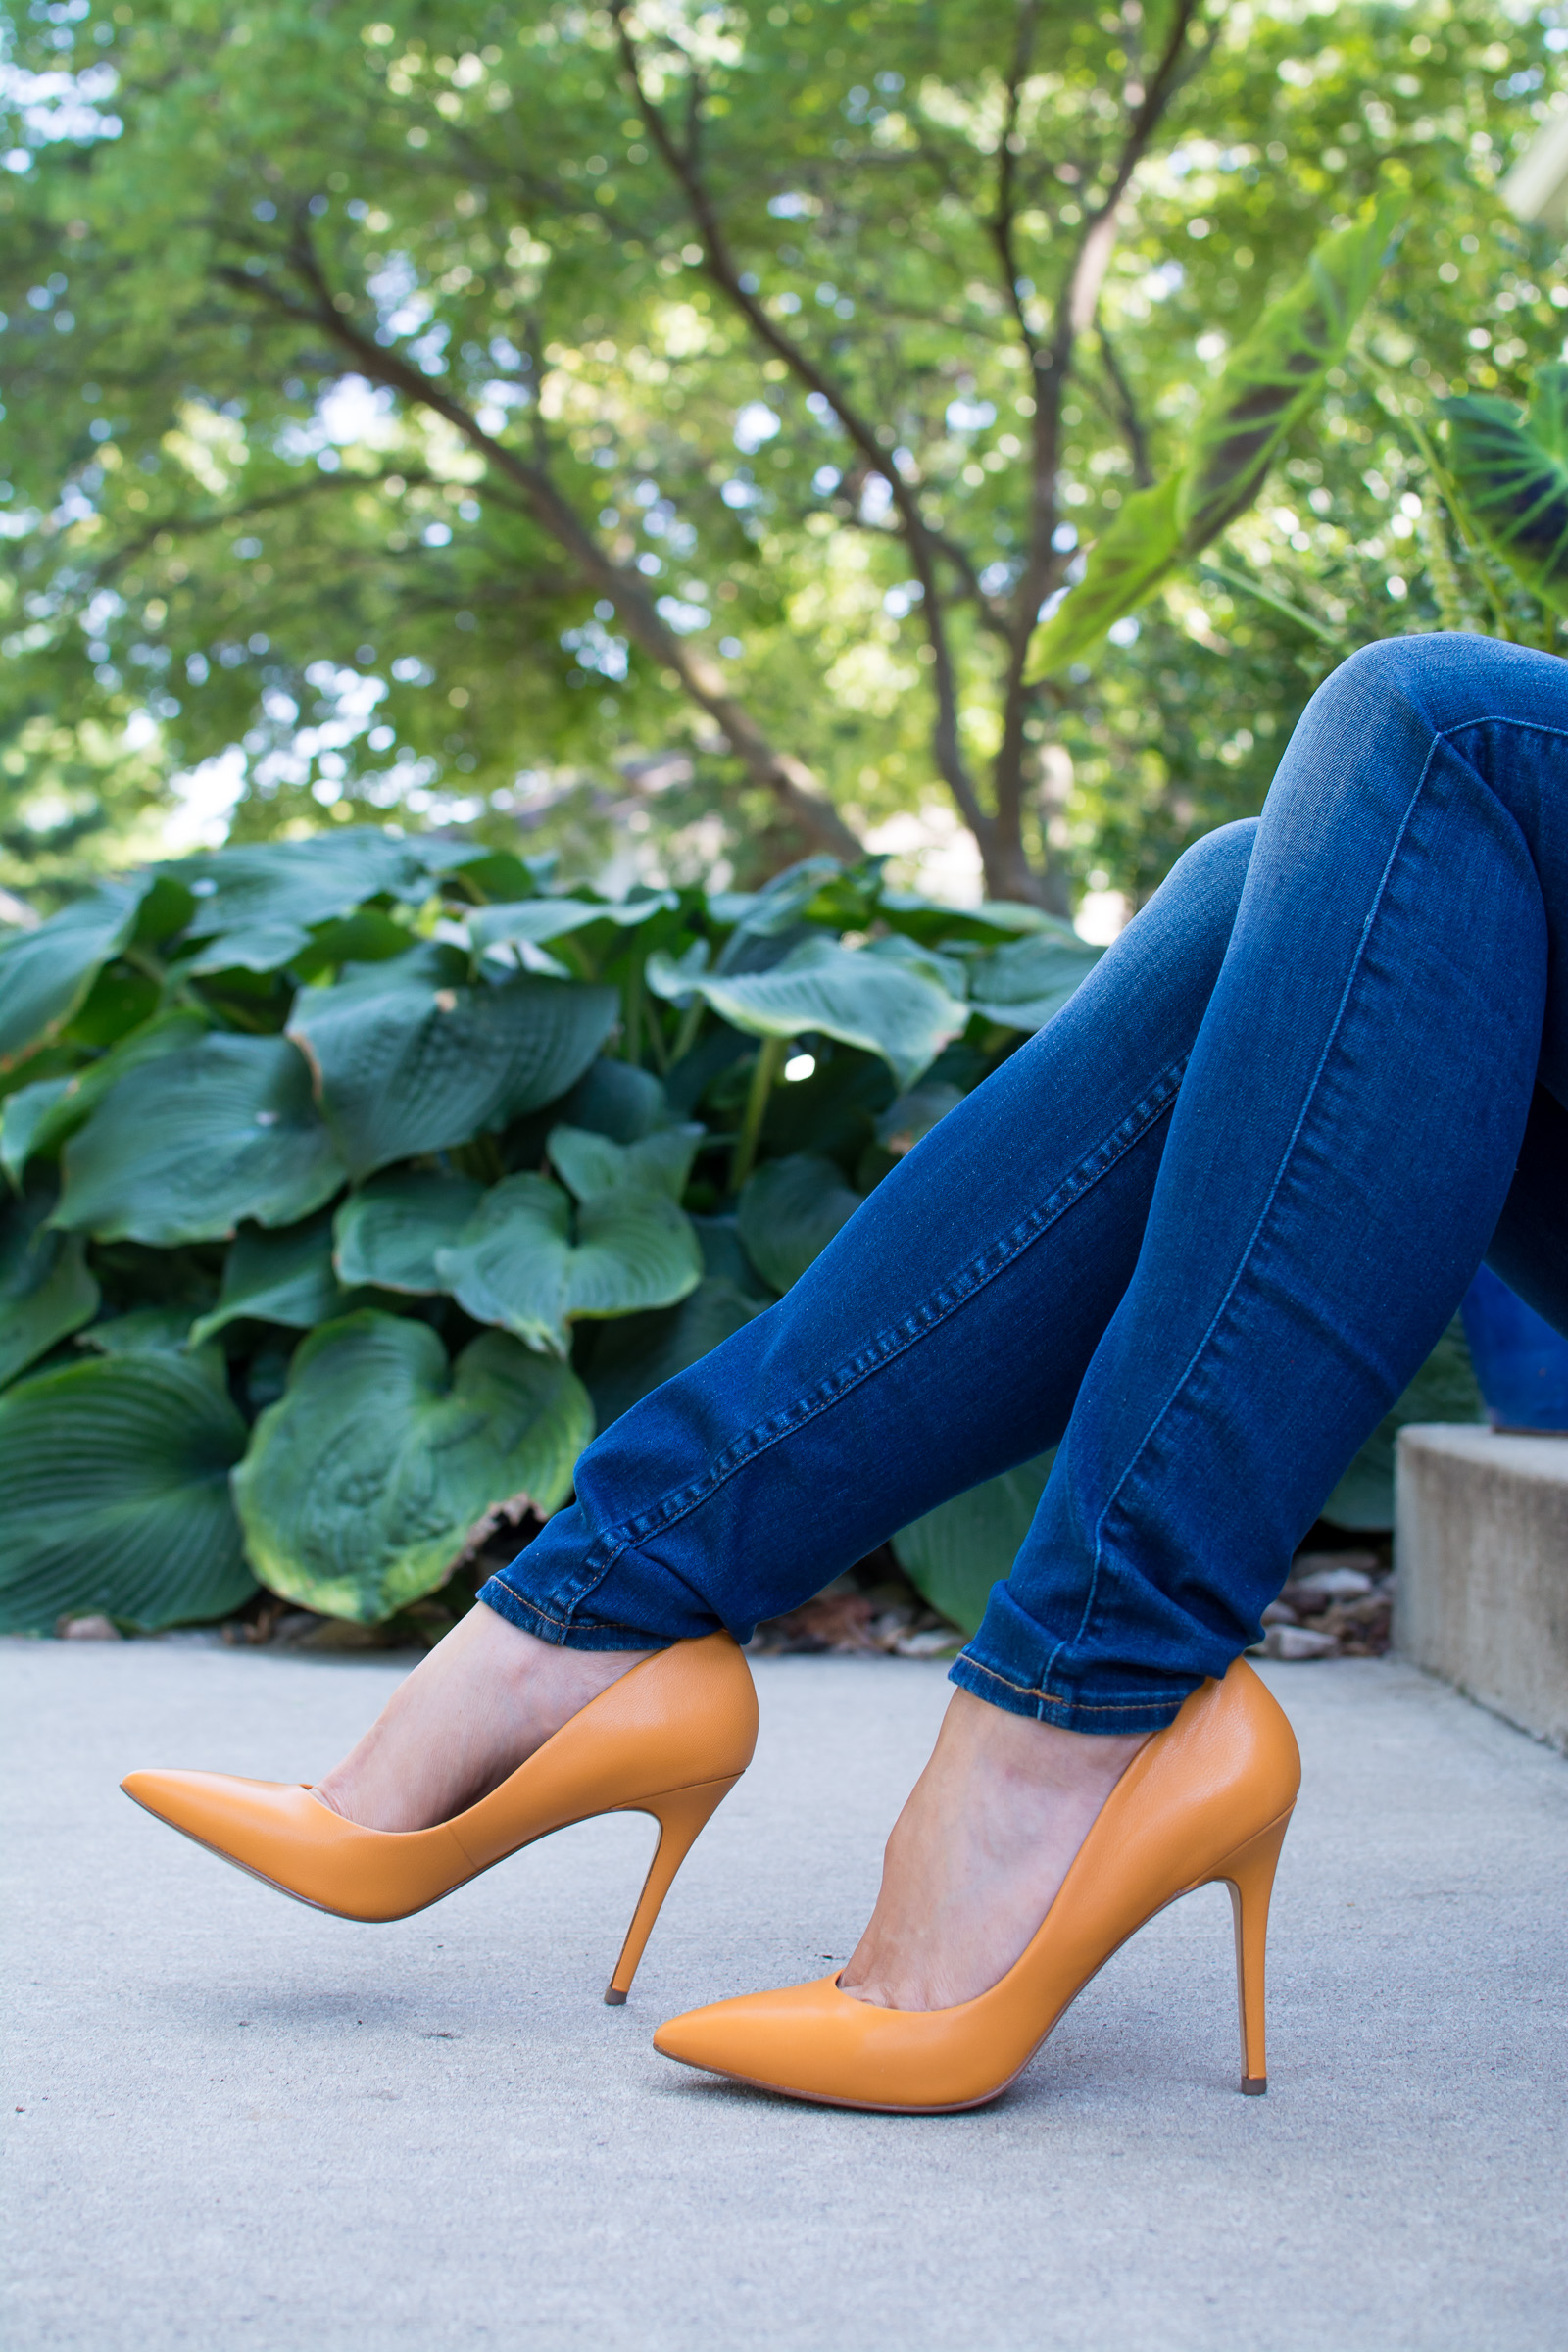 Orange Pumps for Early Fall. | Ashley from LSR